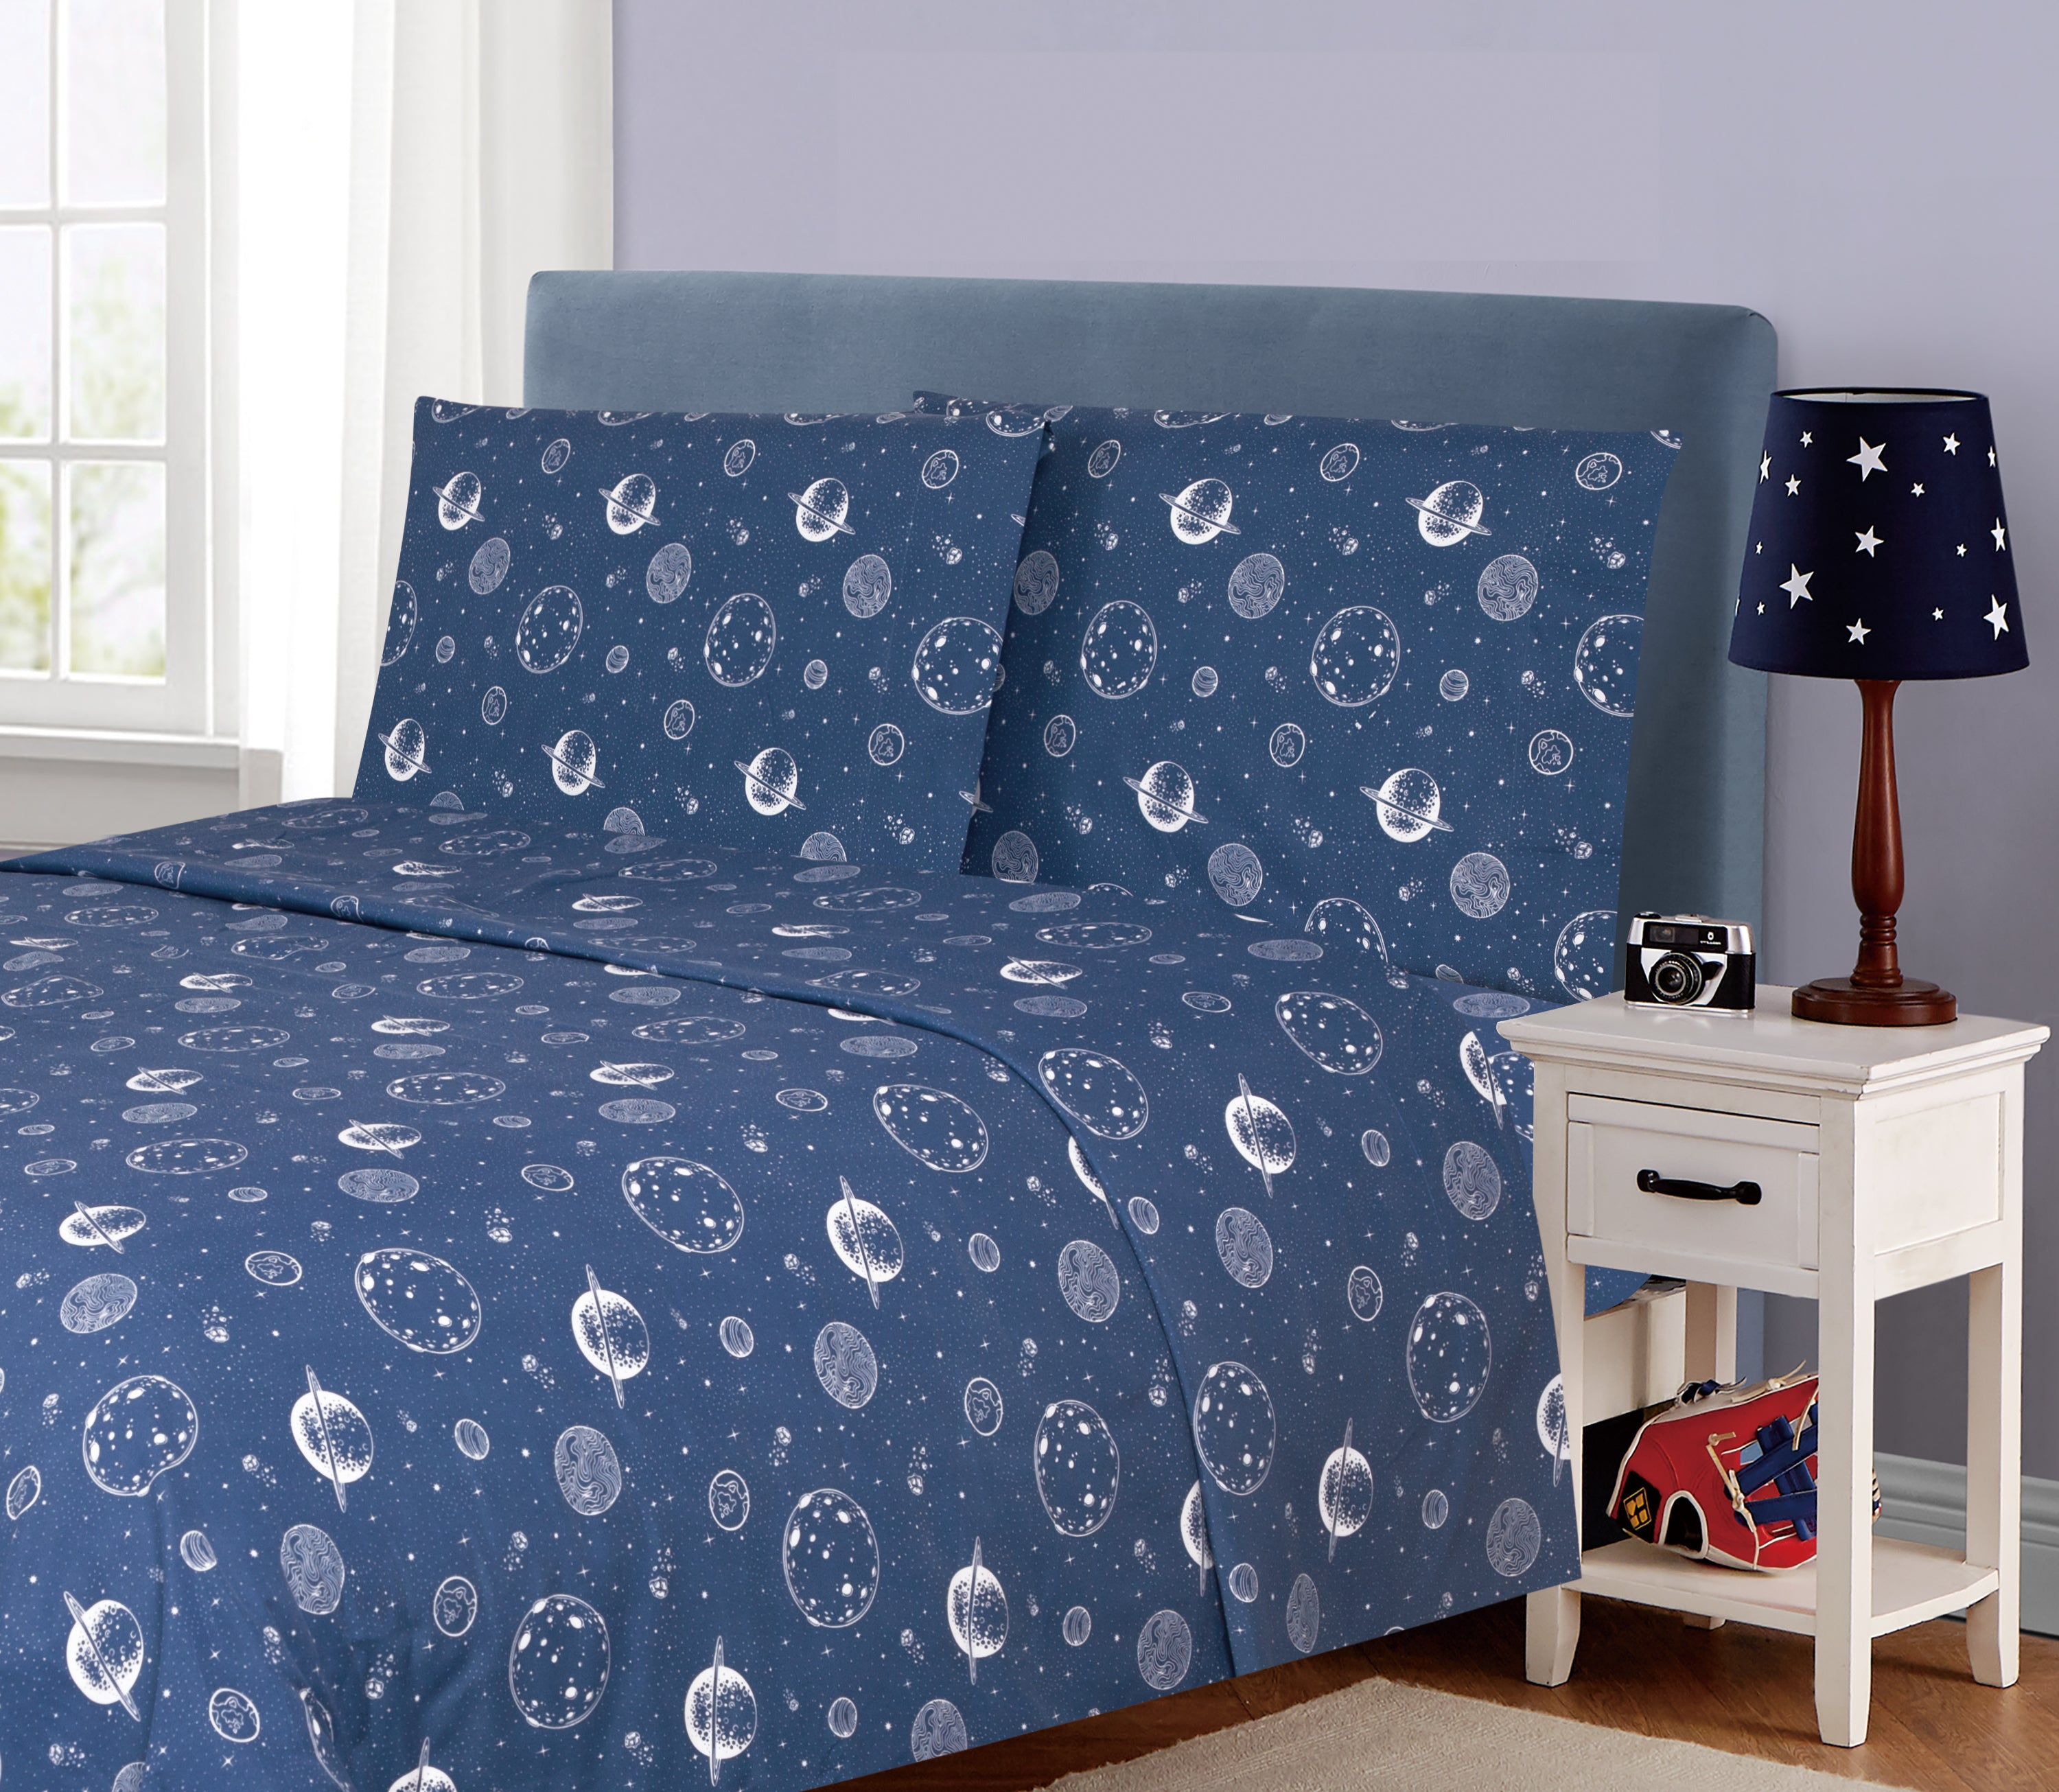 Kids Rule Sheet Set Printed Shark Sketch, Blue